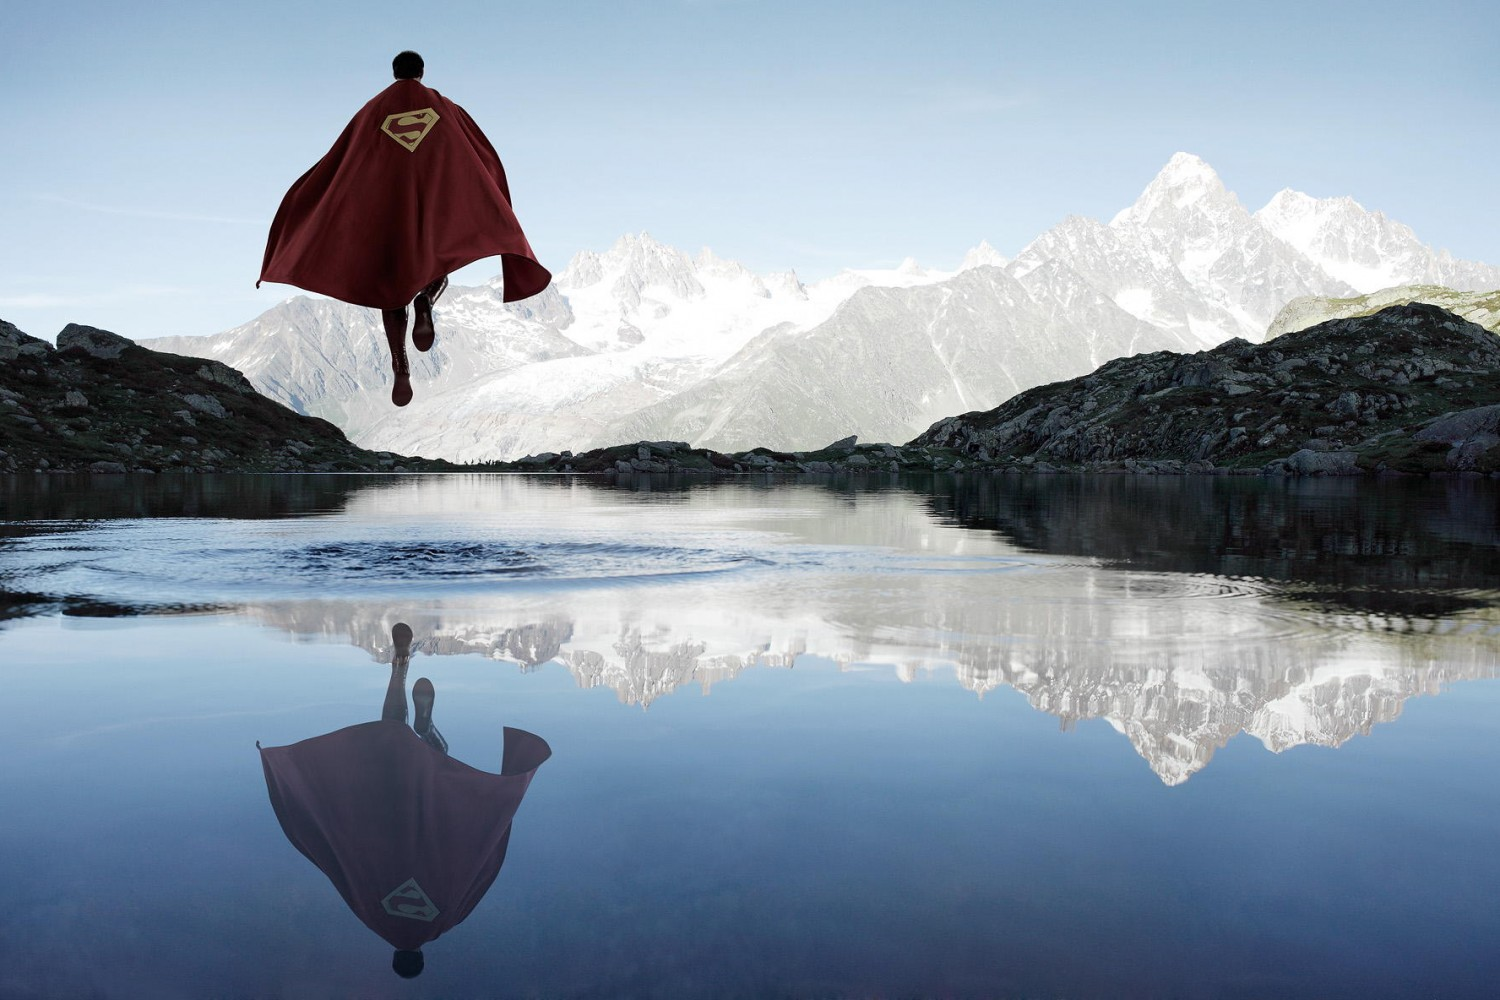 These Powerful Images Portray Your Favorite Superheroes In Moments Of Isolation